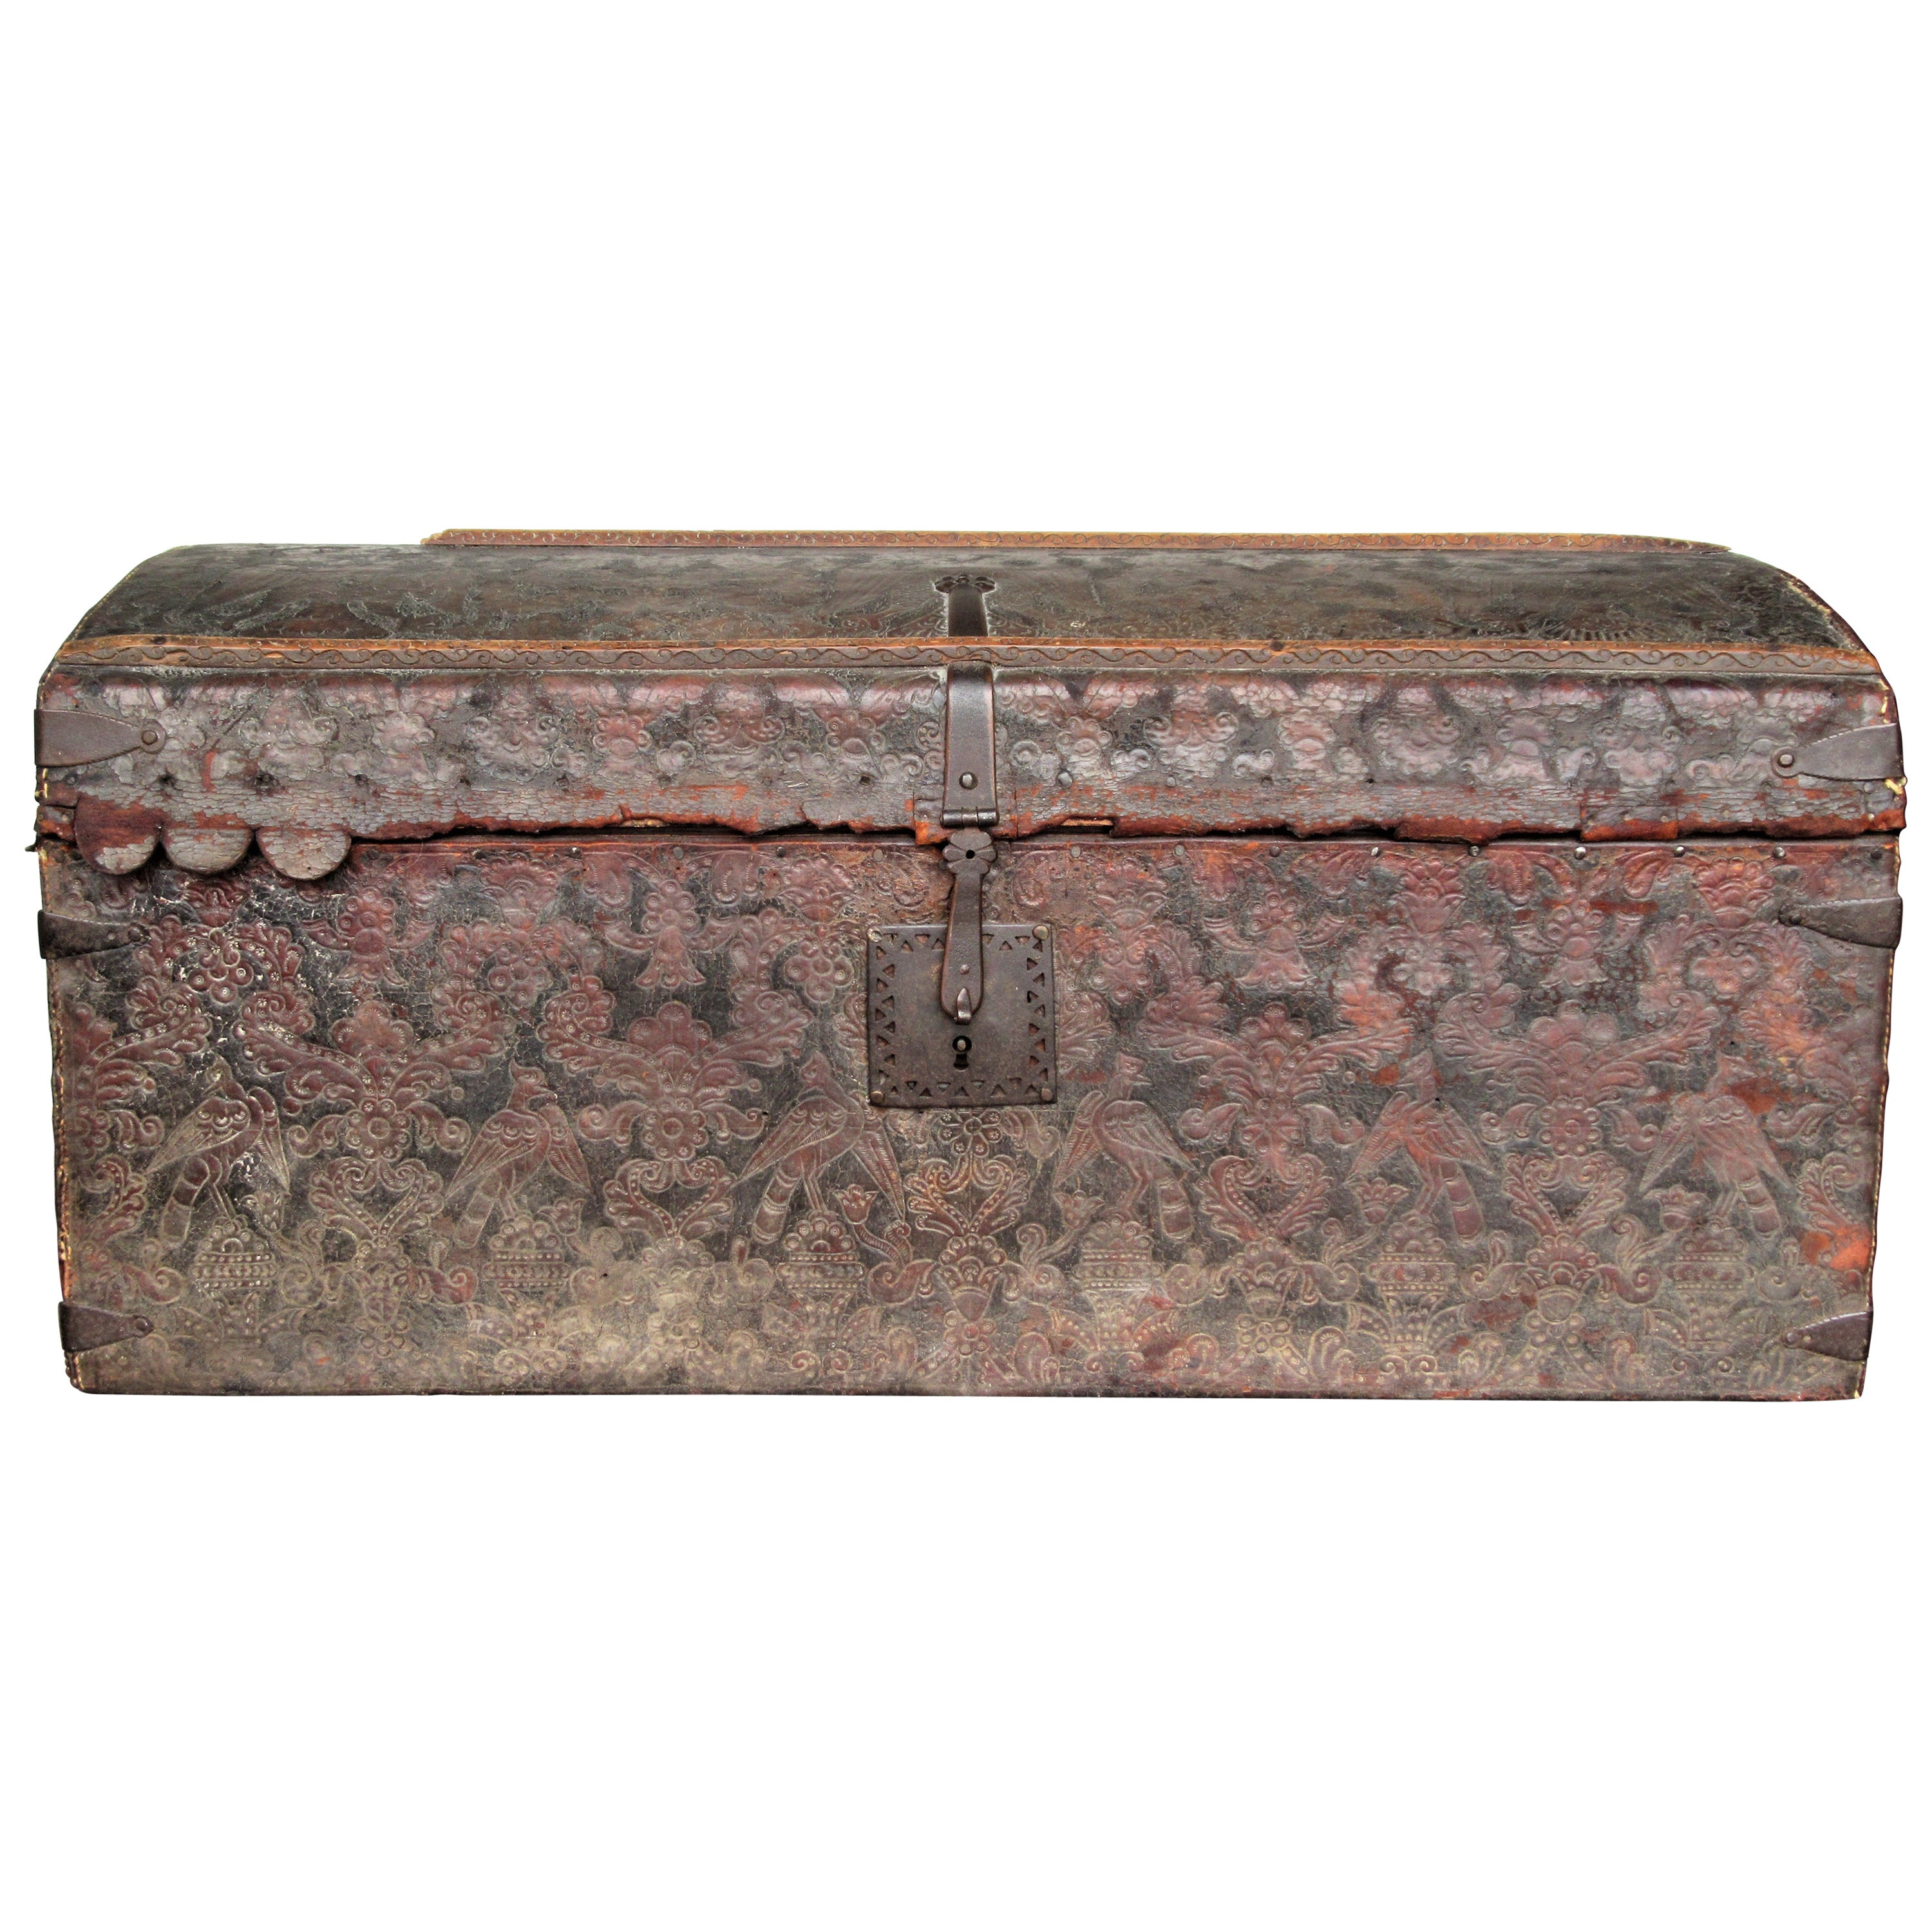 17th Century Spanish Hand Tooled Leather Trunk